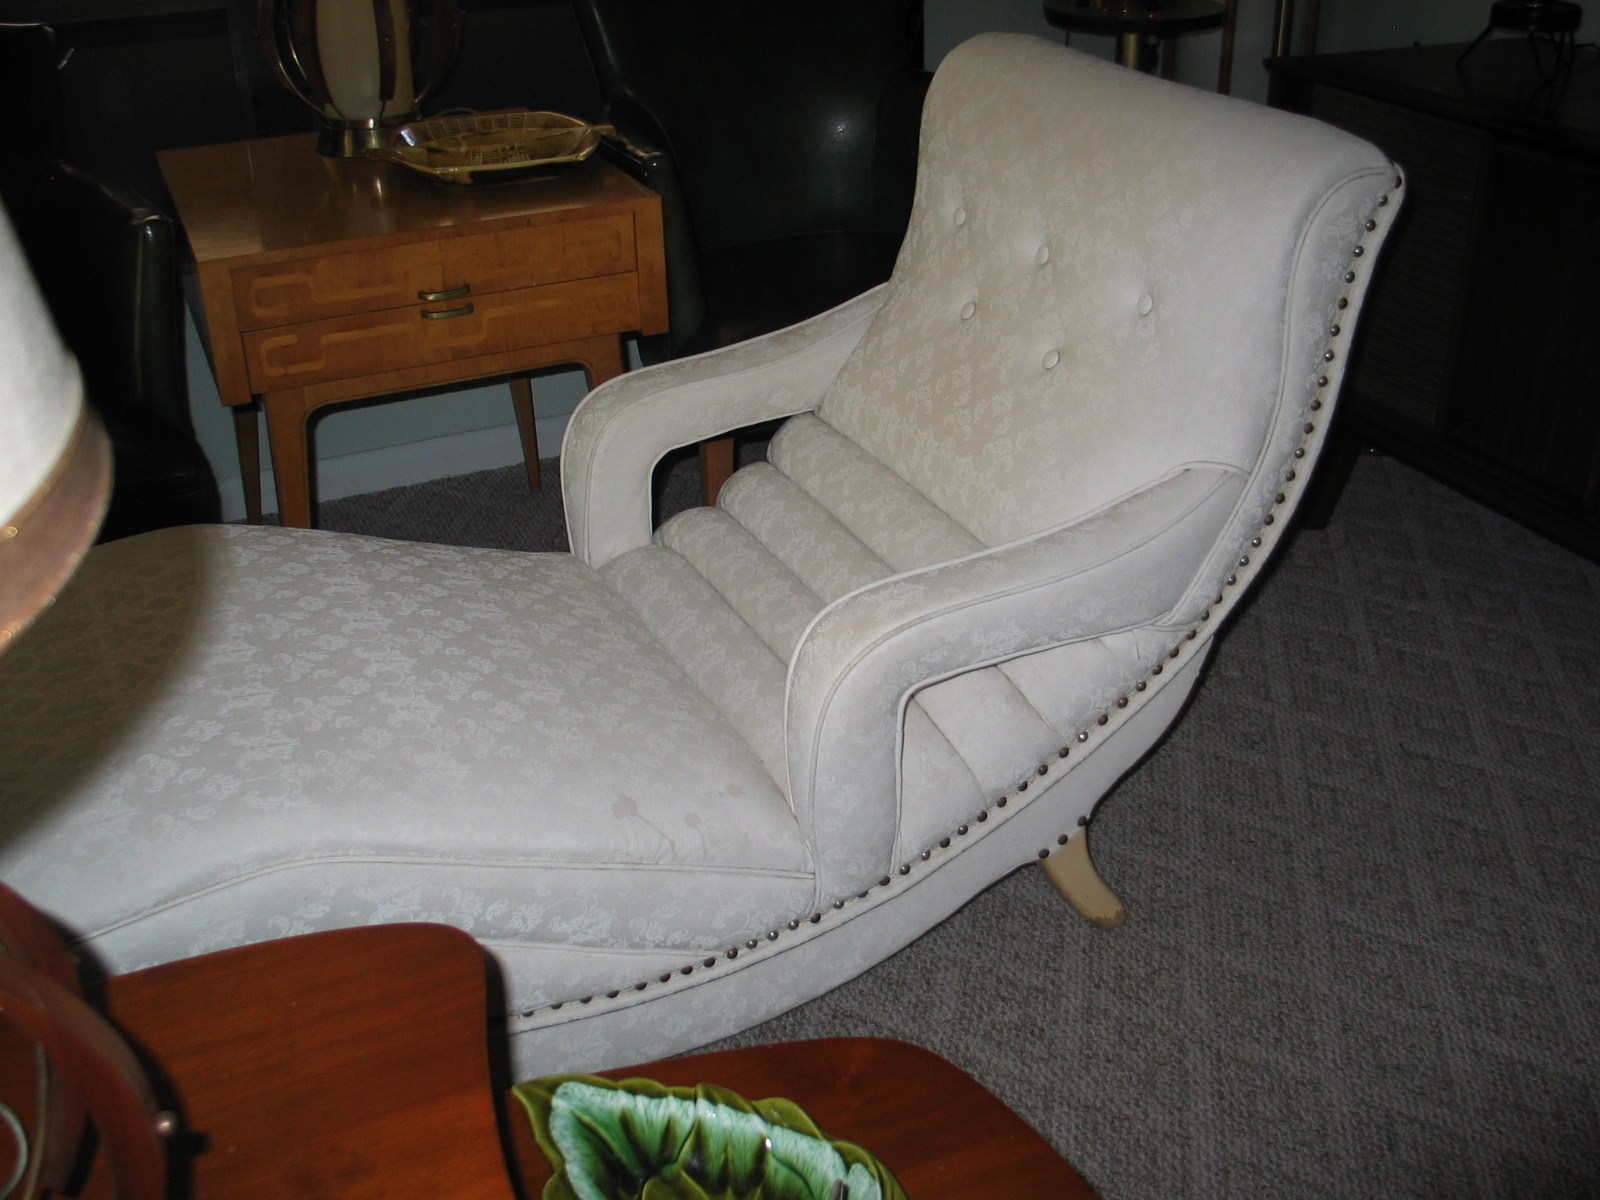 Pleasing Daves Mid Century Stuff Lets Identify This Contour Chair Alphanode Cool Chair Designs And Ideas Alphanodeonline